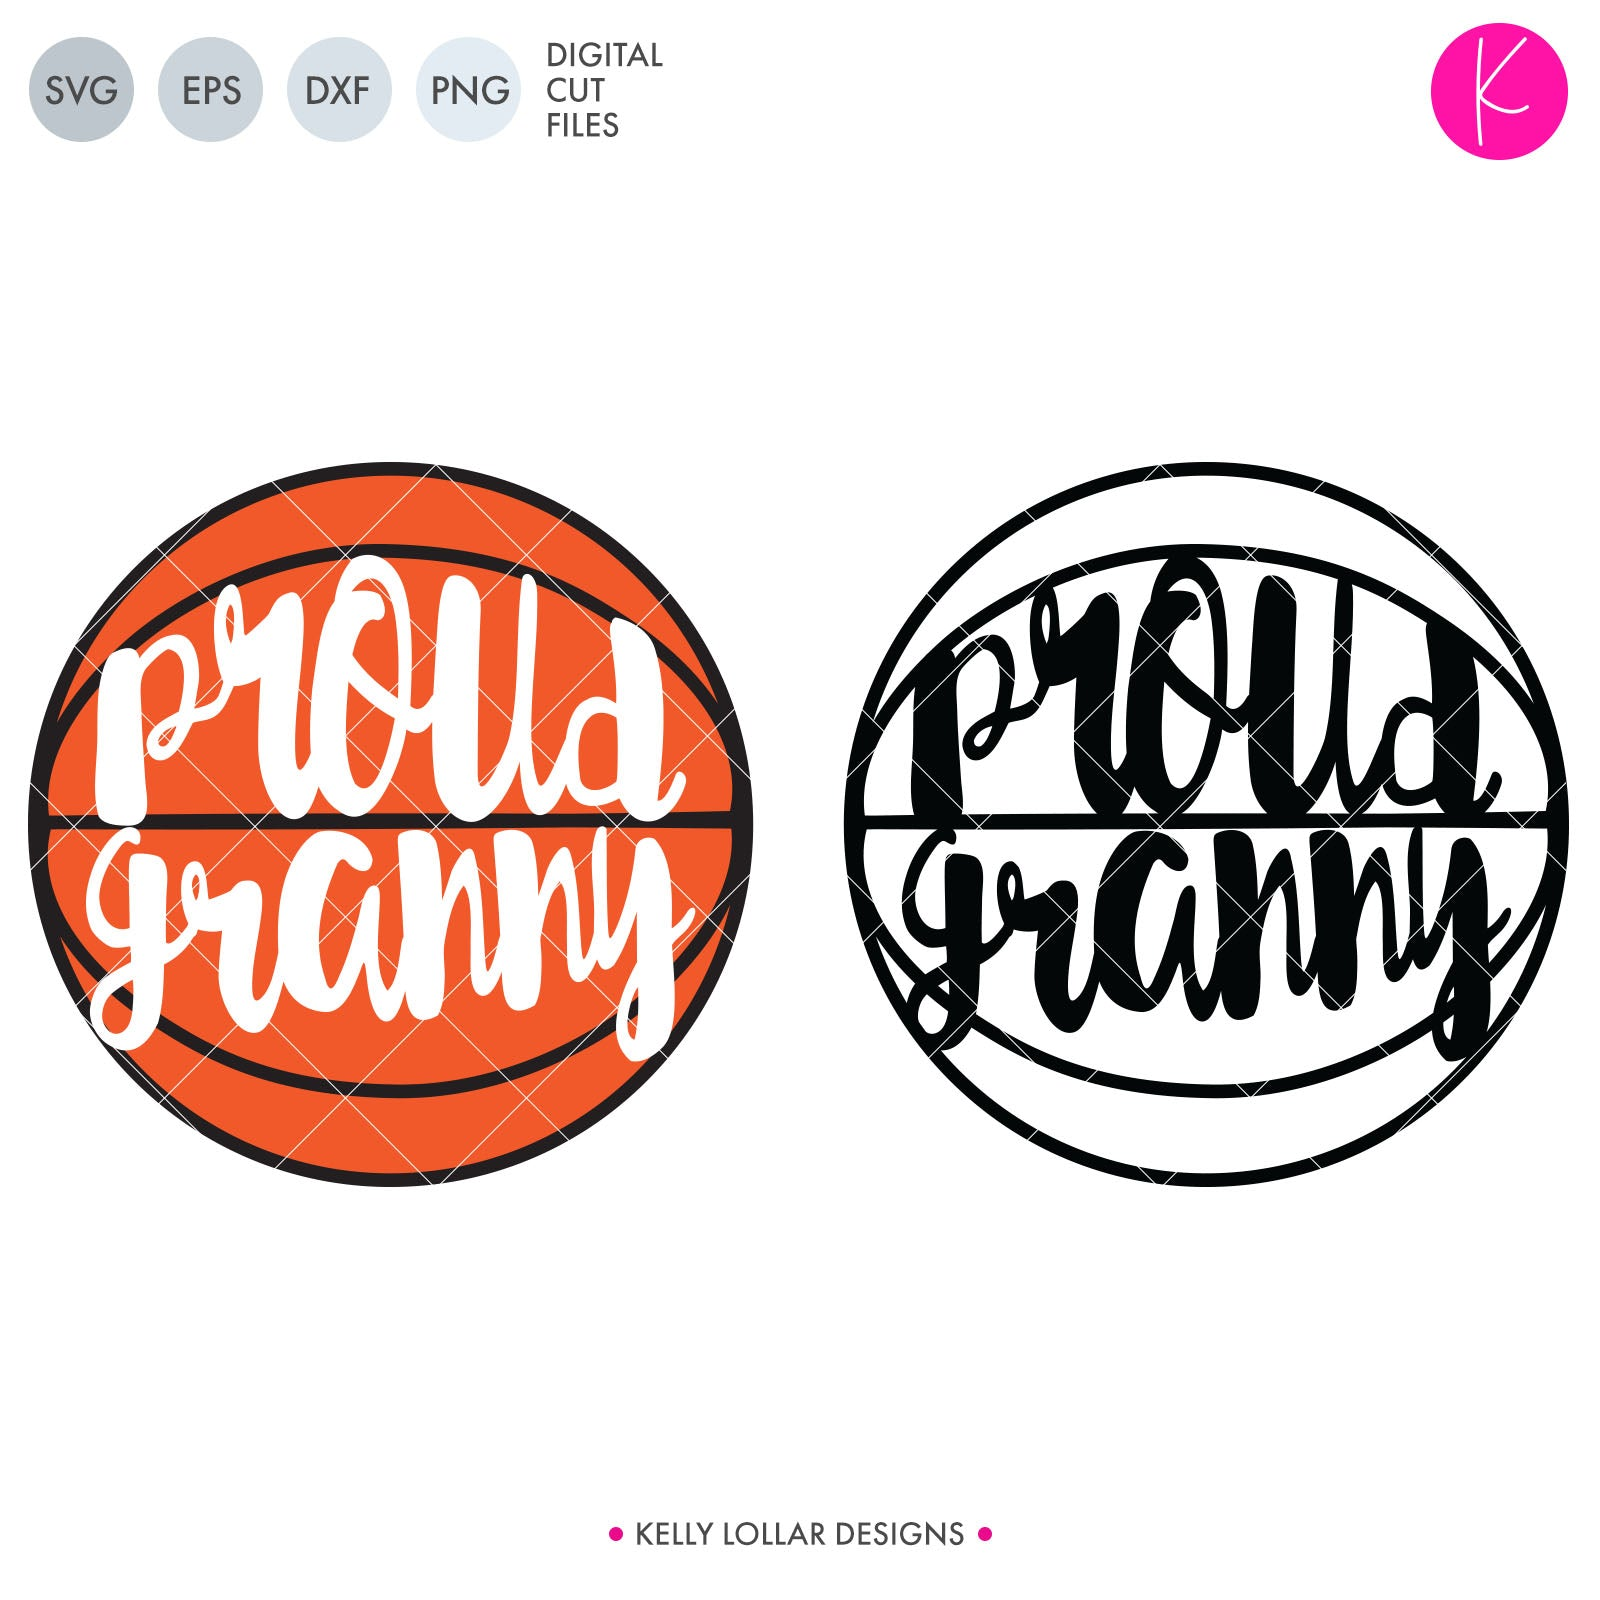 Proud Basketball Family | SVG DXF EPS PNG Cut Files Basketball with Proud Family Member's Name in Script for the Women and Print for the Men | SVG DXF PNG Cut Files Choose from individual files or the whole bundle INDIVIDUAL